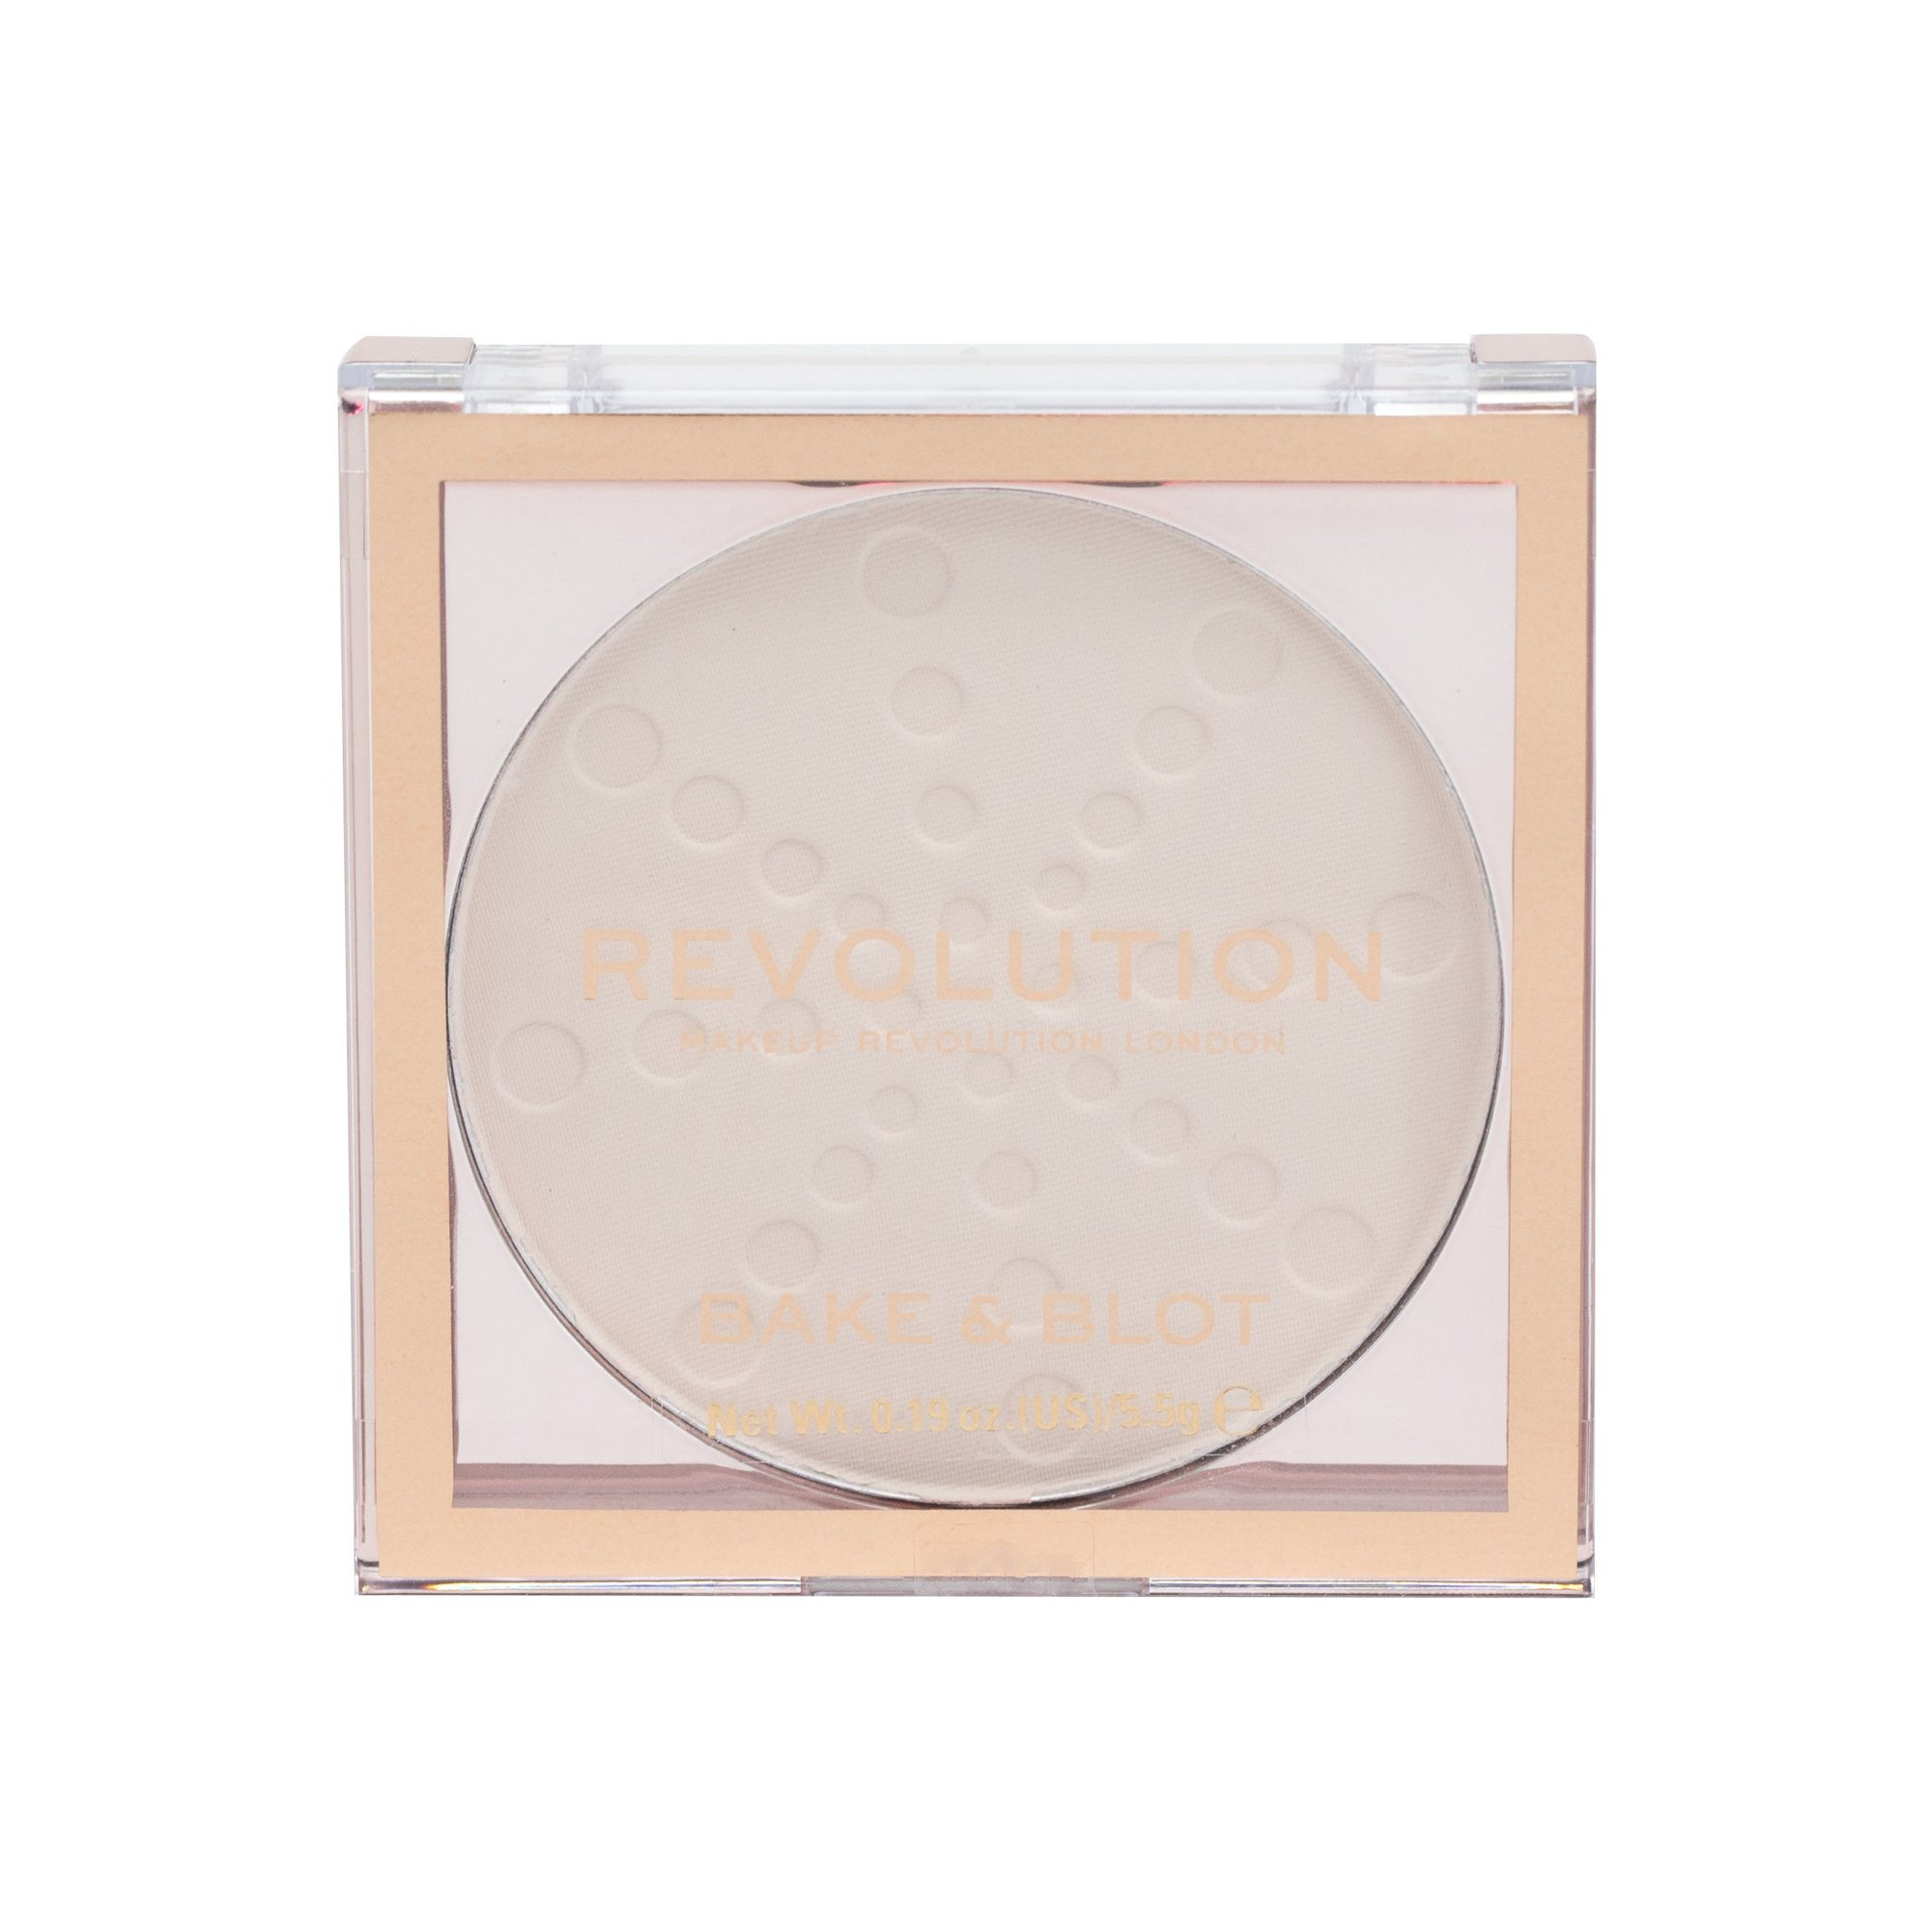 Makeup Revolution London Bake & Blot  Pudr, W, 5,5 g